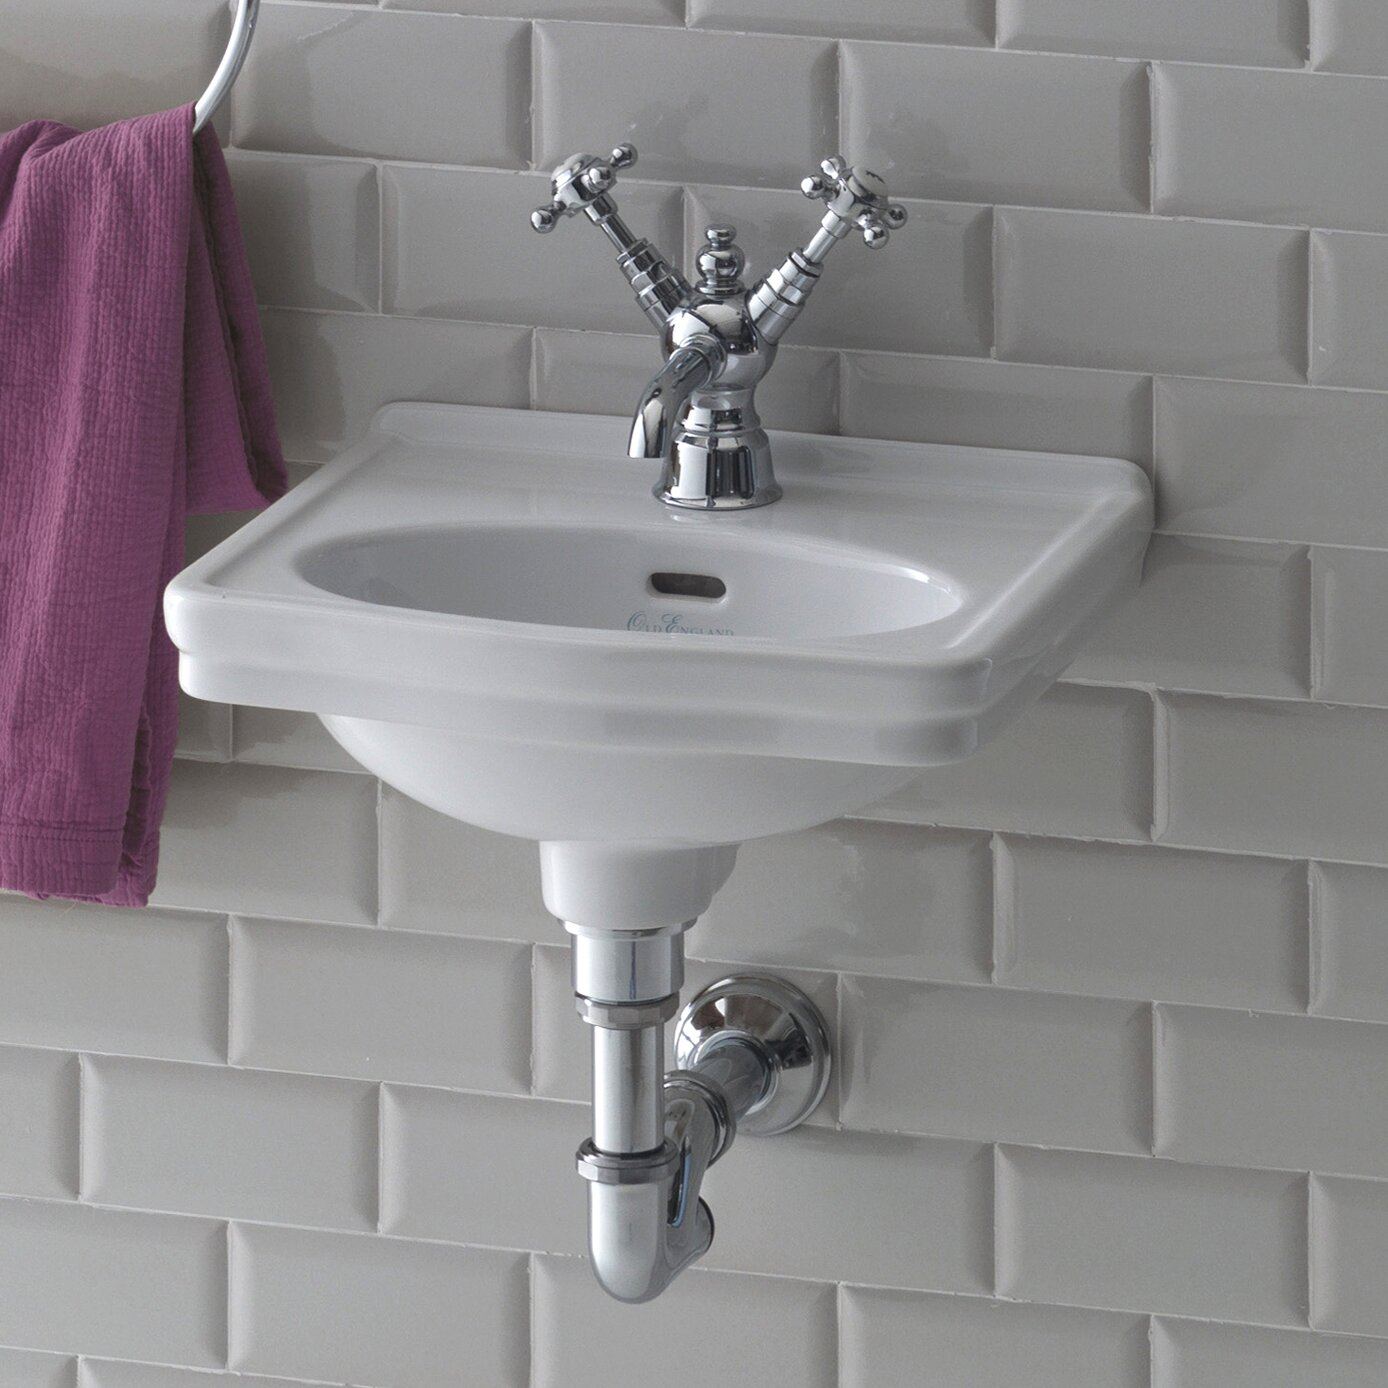 Bissonnet Evo Londra Wall Mounted Bathroom Sink & Reviews